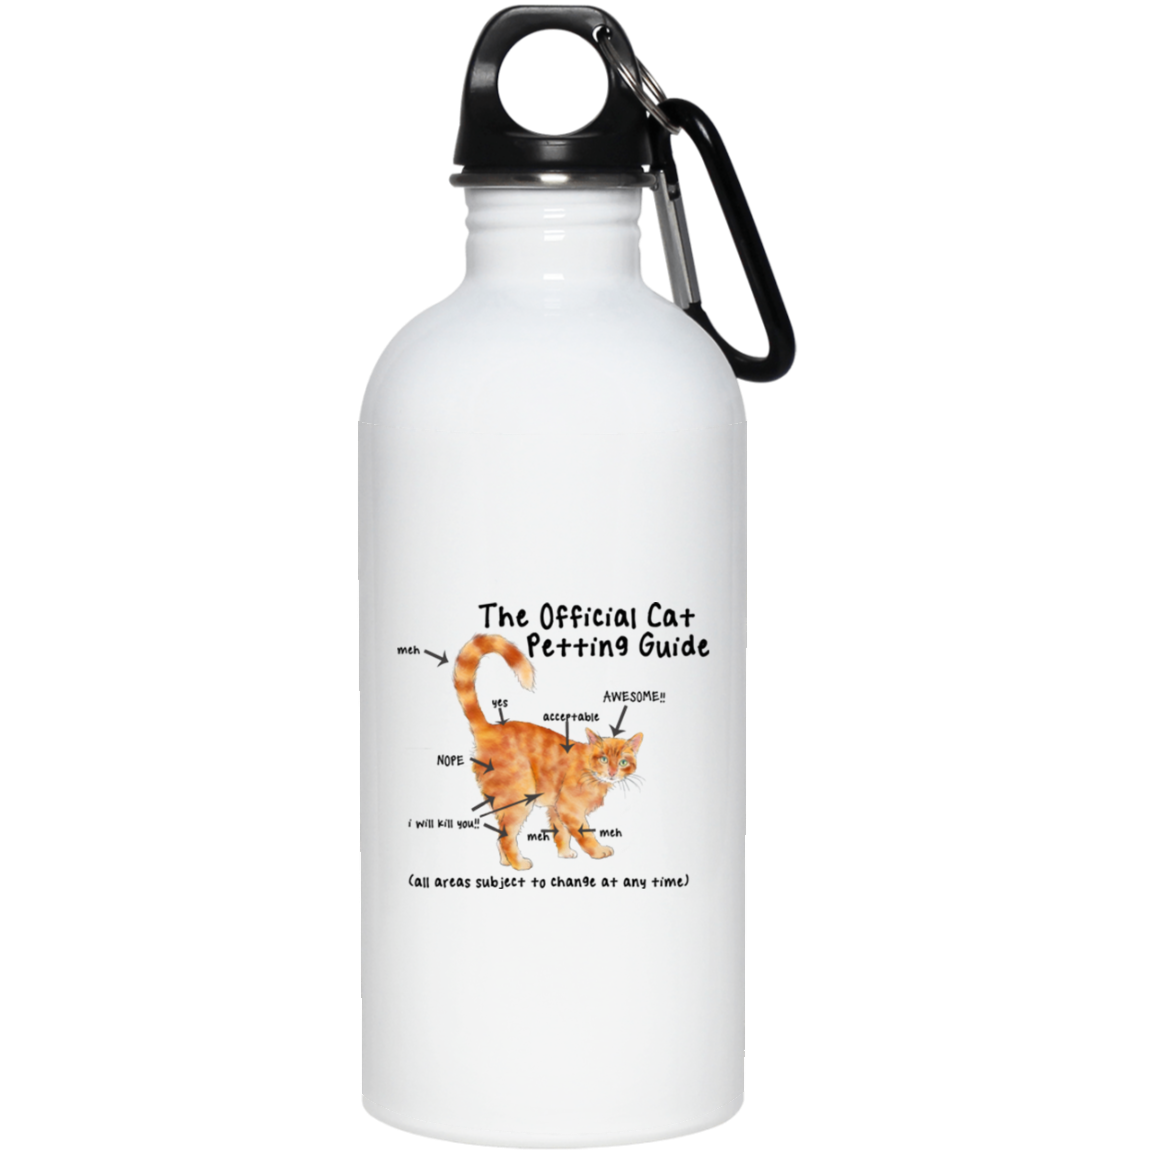 Cat Petting Guide Stainless Steel Water Bottle